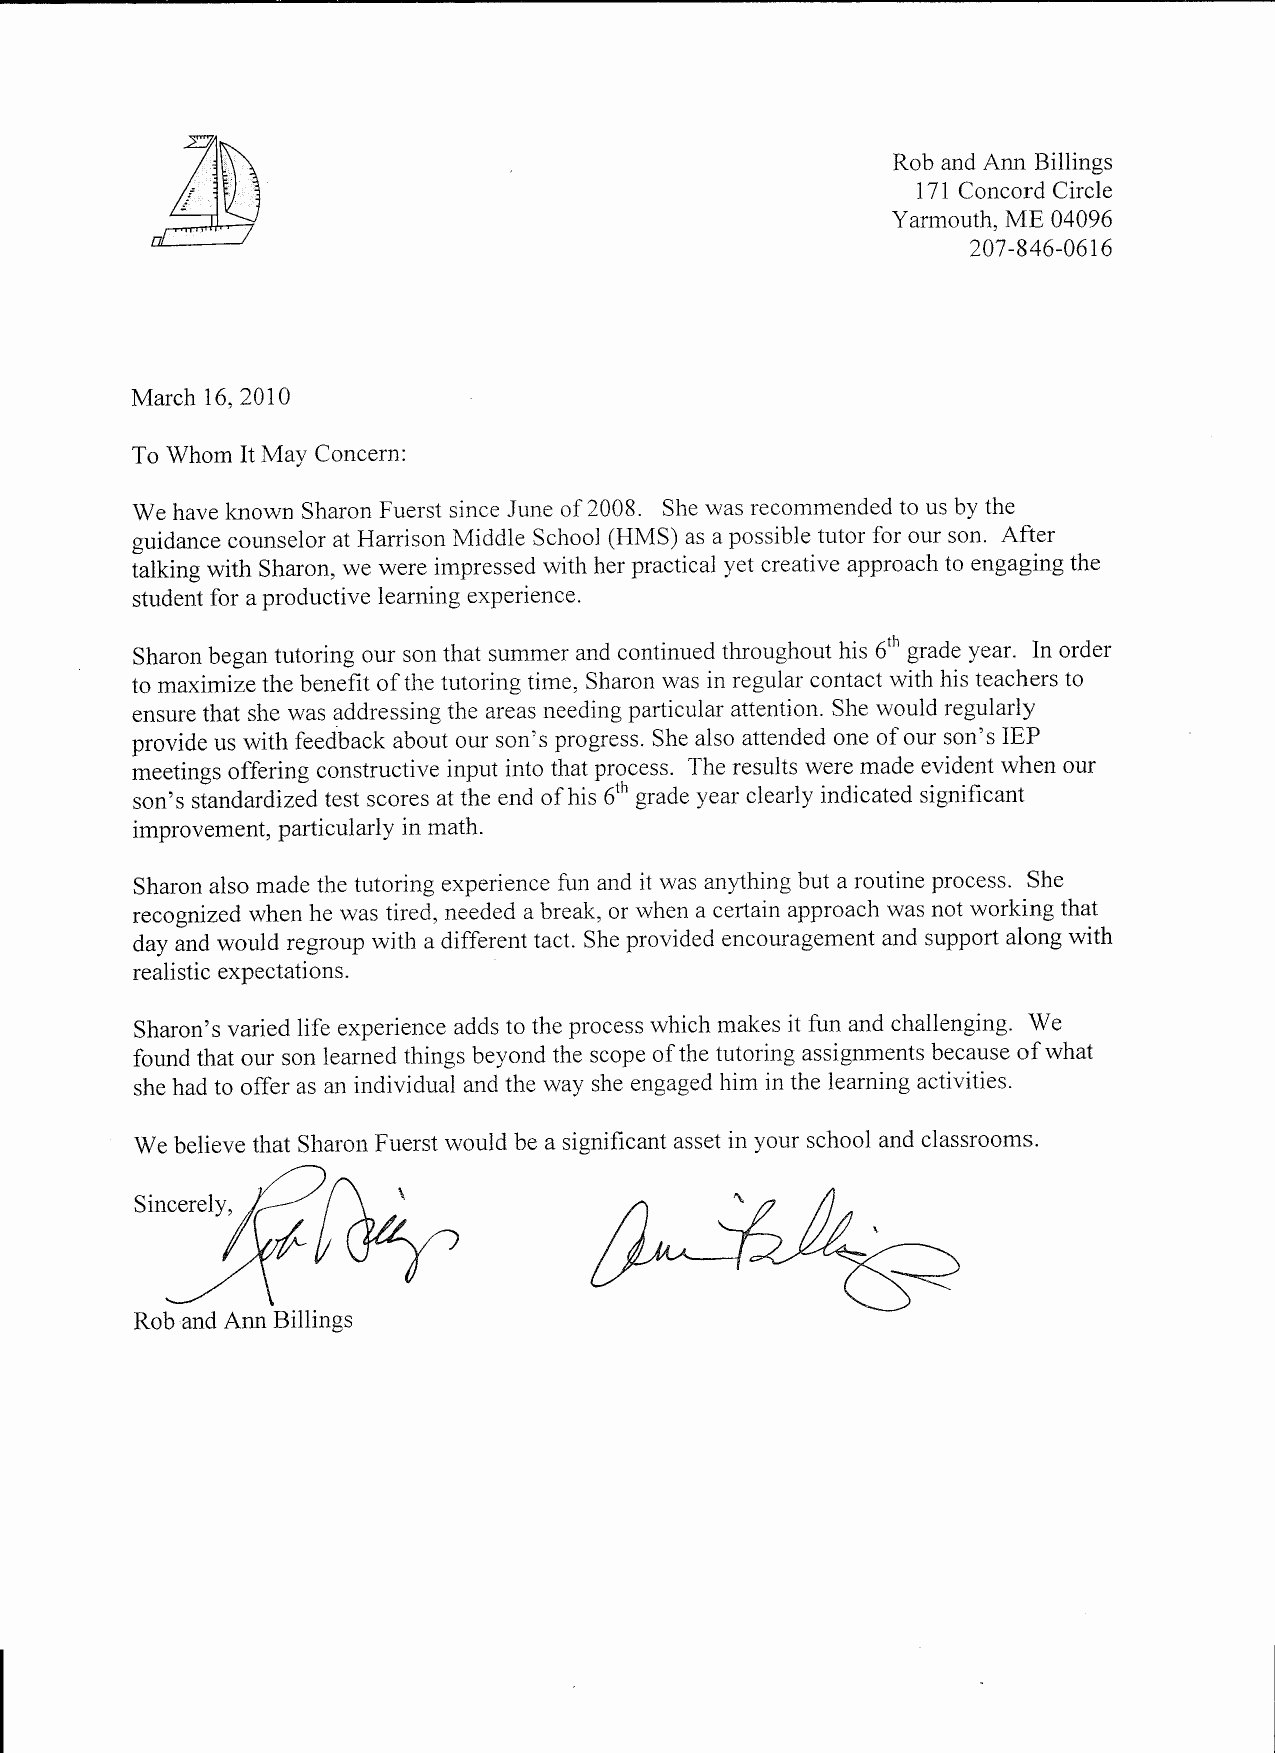 Recommendation Letter for Tutor Awesome Sharon Fuerst Tutoring Re Mendations